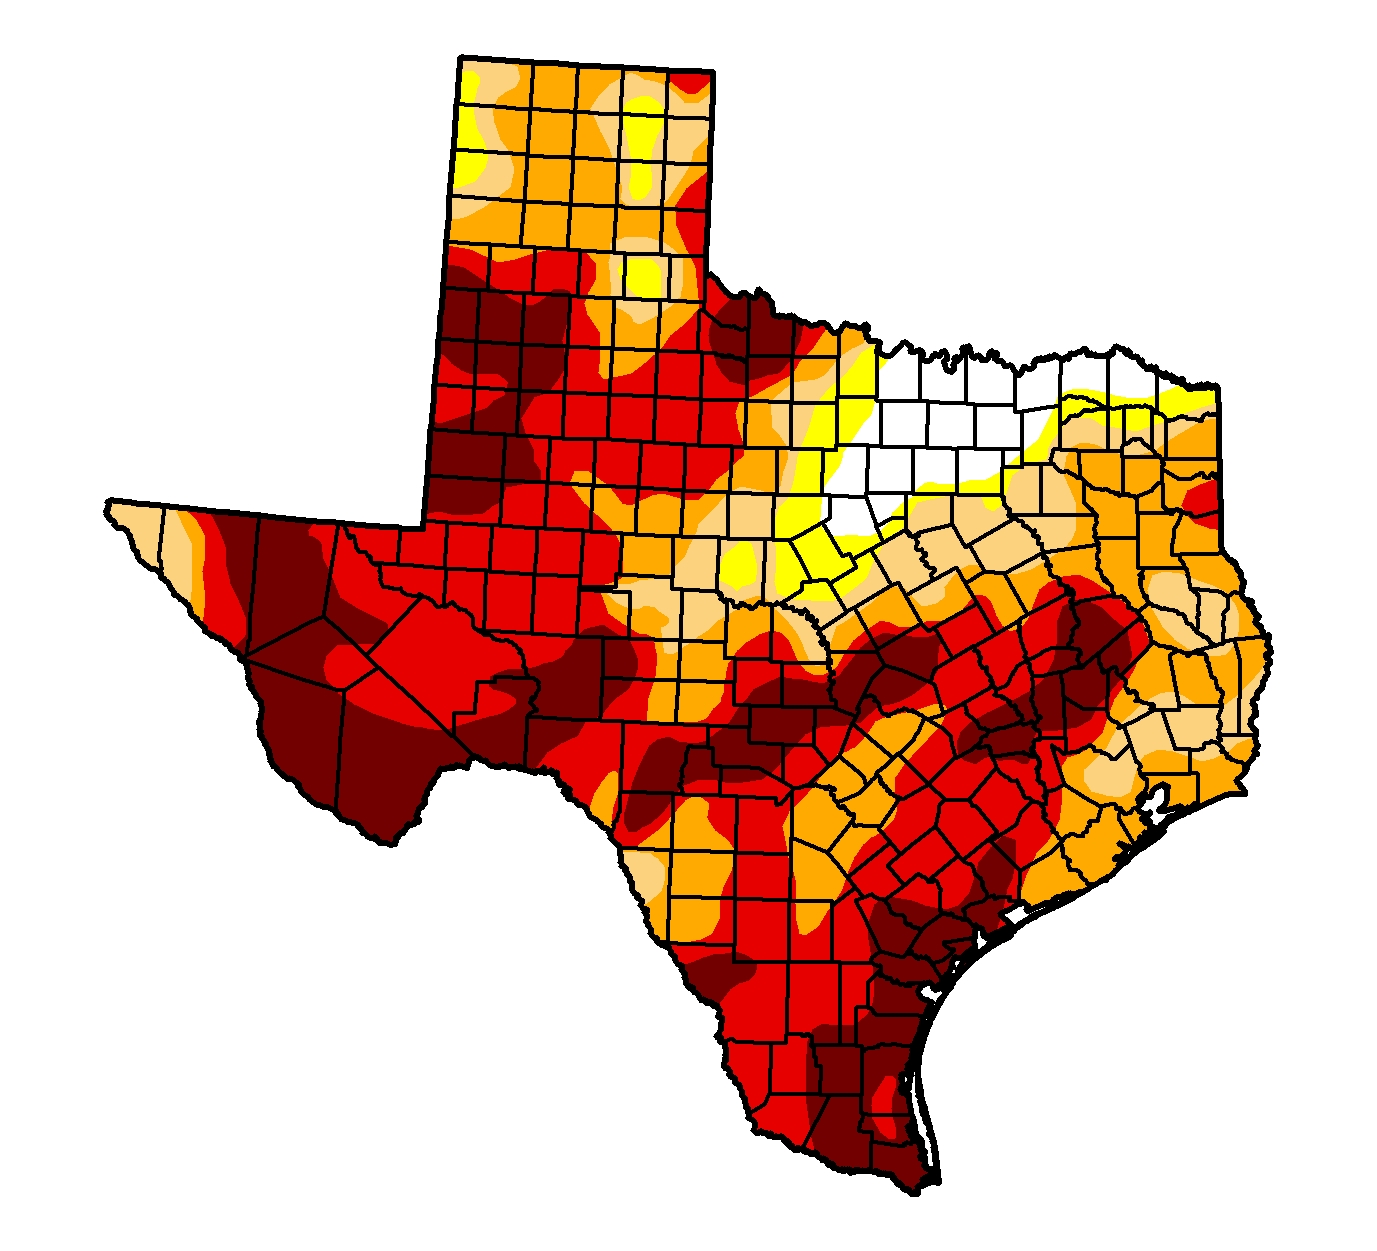 us drought monitor feb 2 2012 image of tx